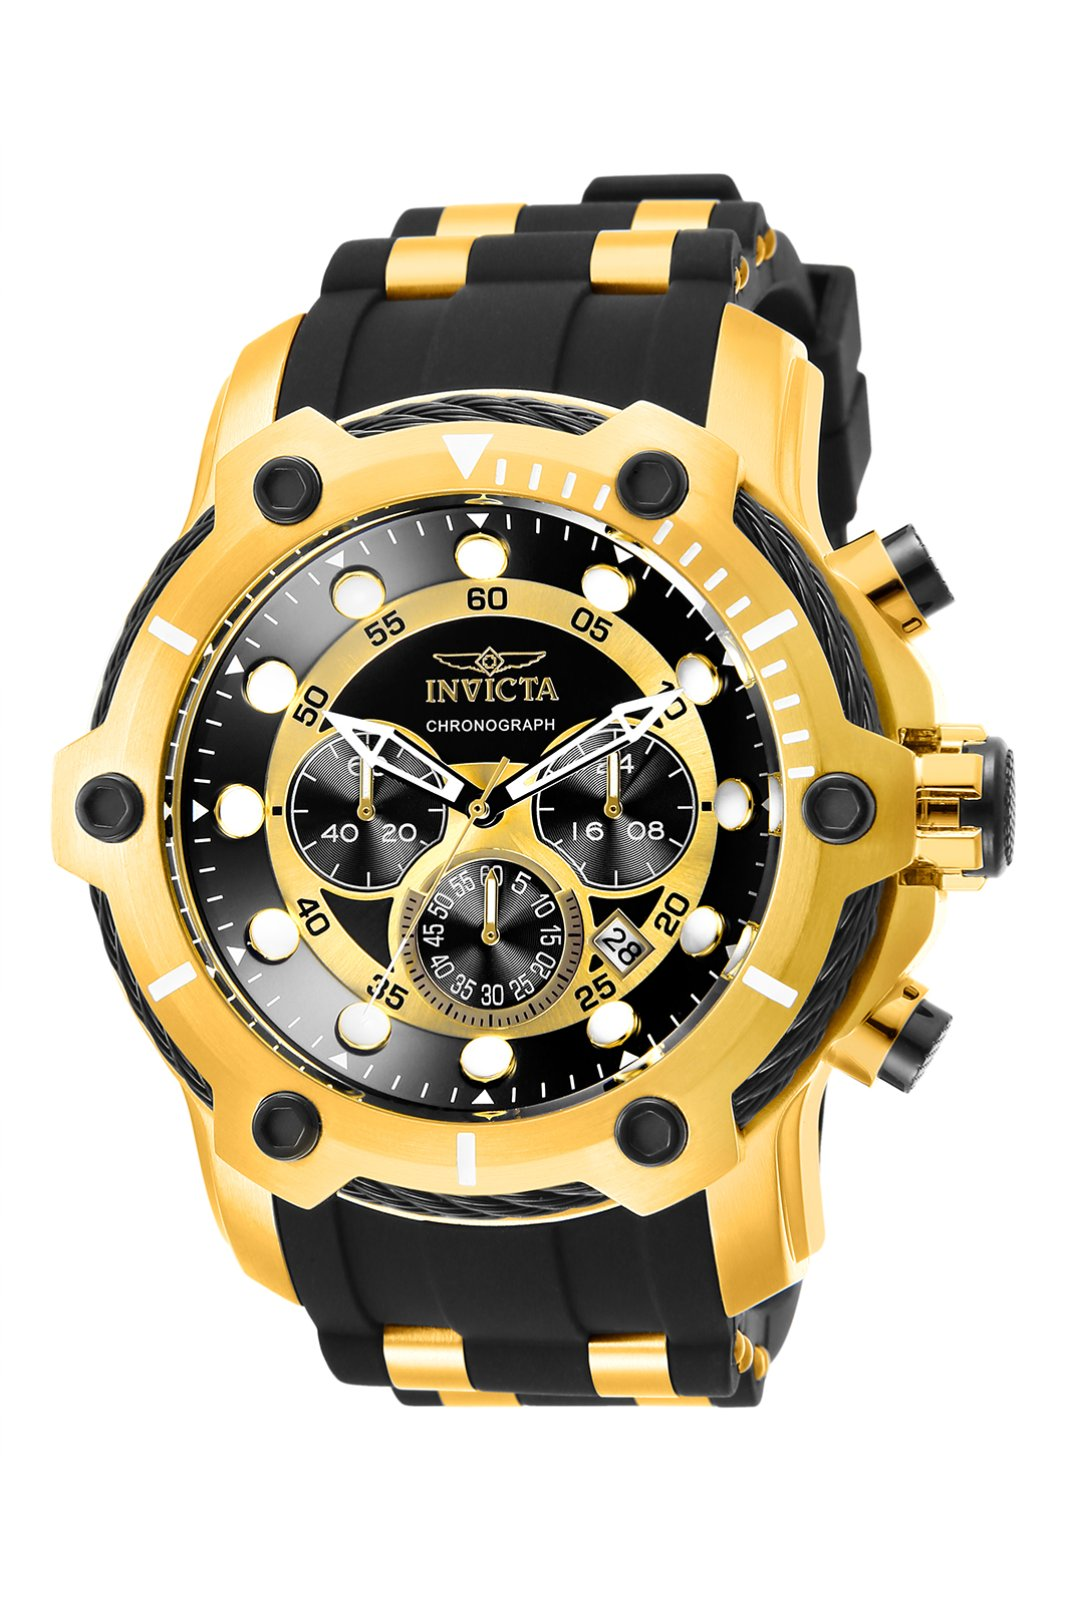 b5d3a635f Invicta Watch Bolt 26751 - Official Invicta Store - Buy Online!